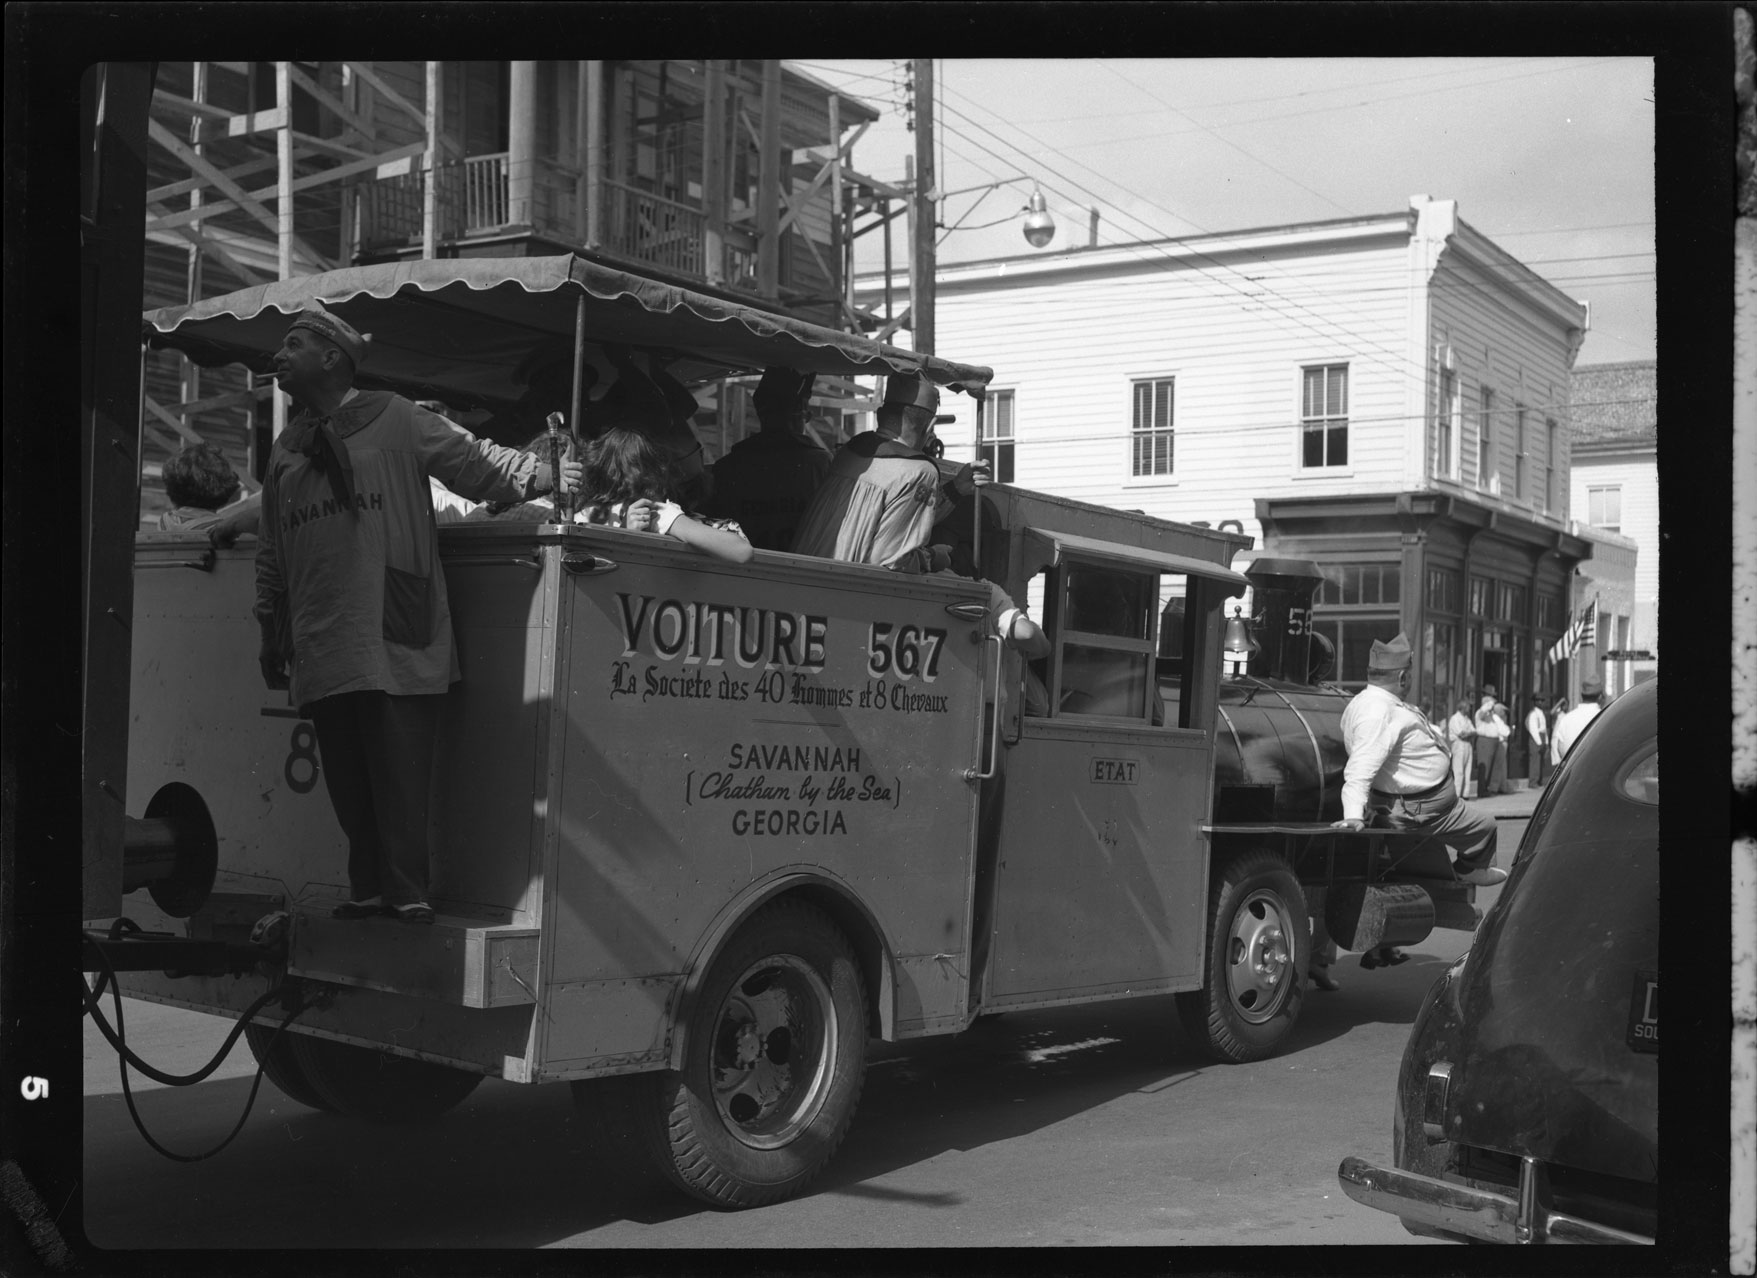 Voiture train of Savannah, Georgia in the 40 and 8 parade